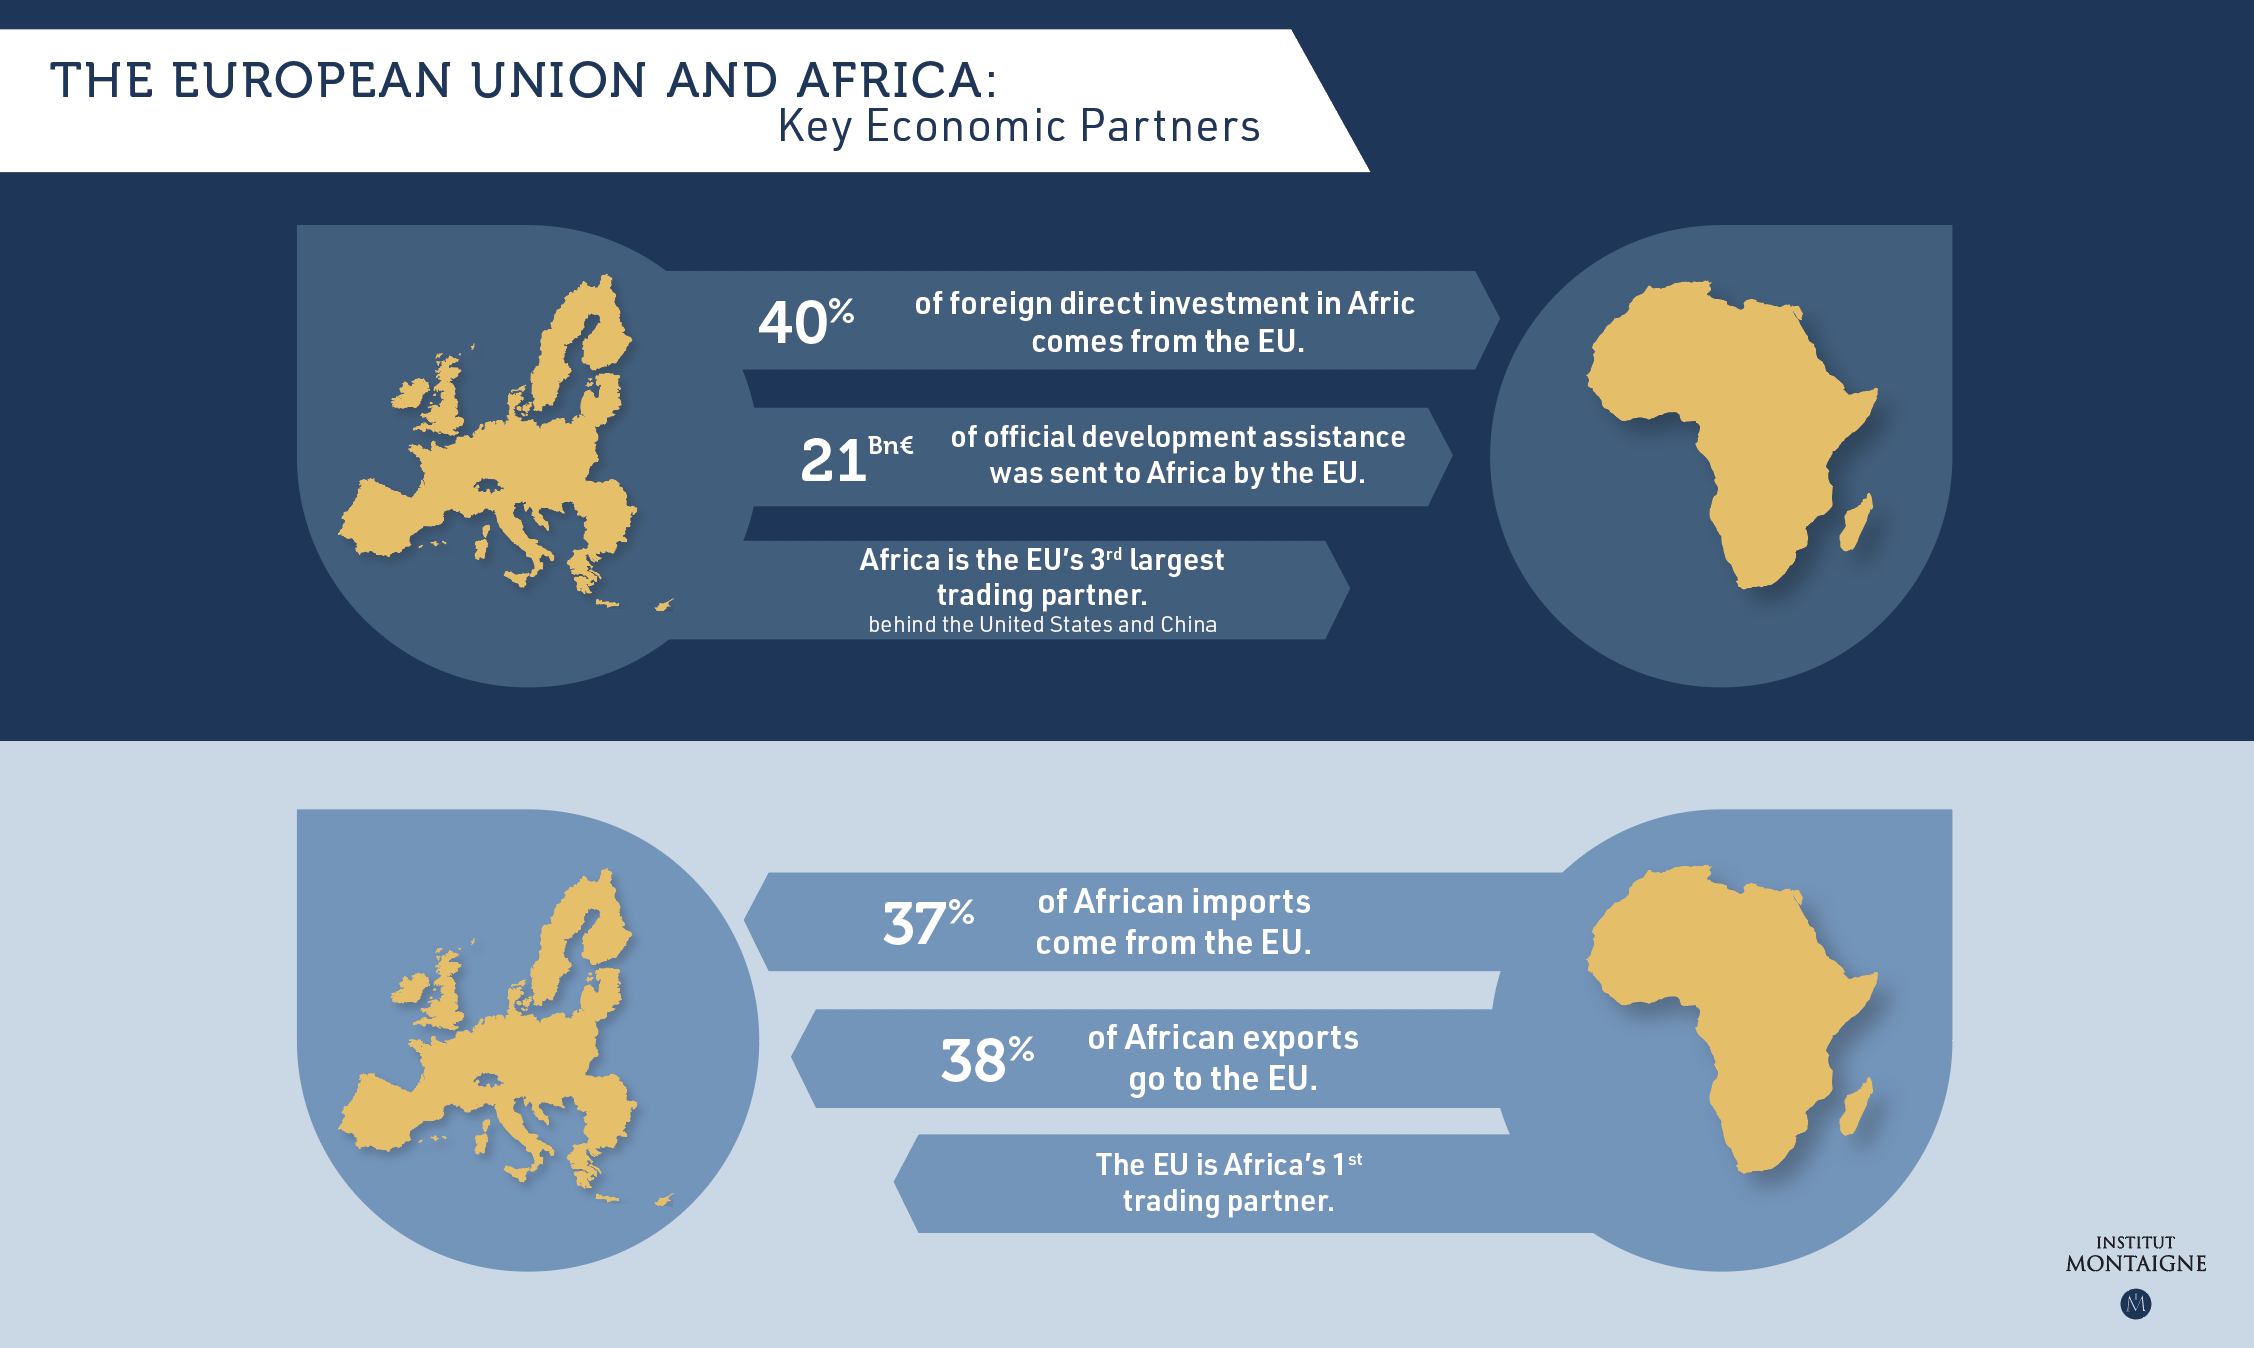 Europe-Africa: A Special Partnership